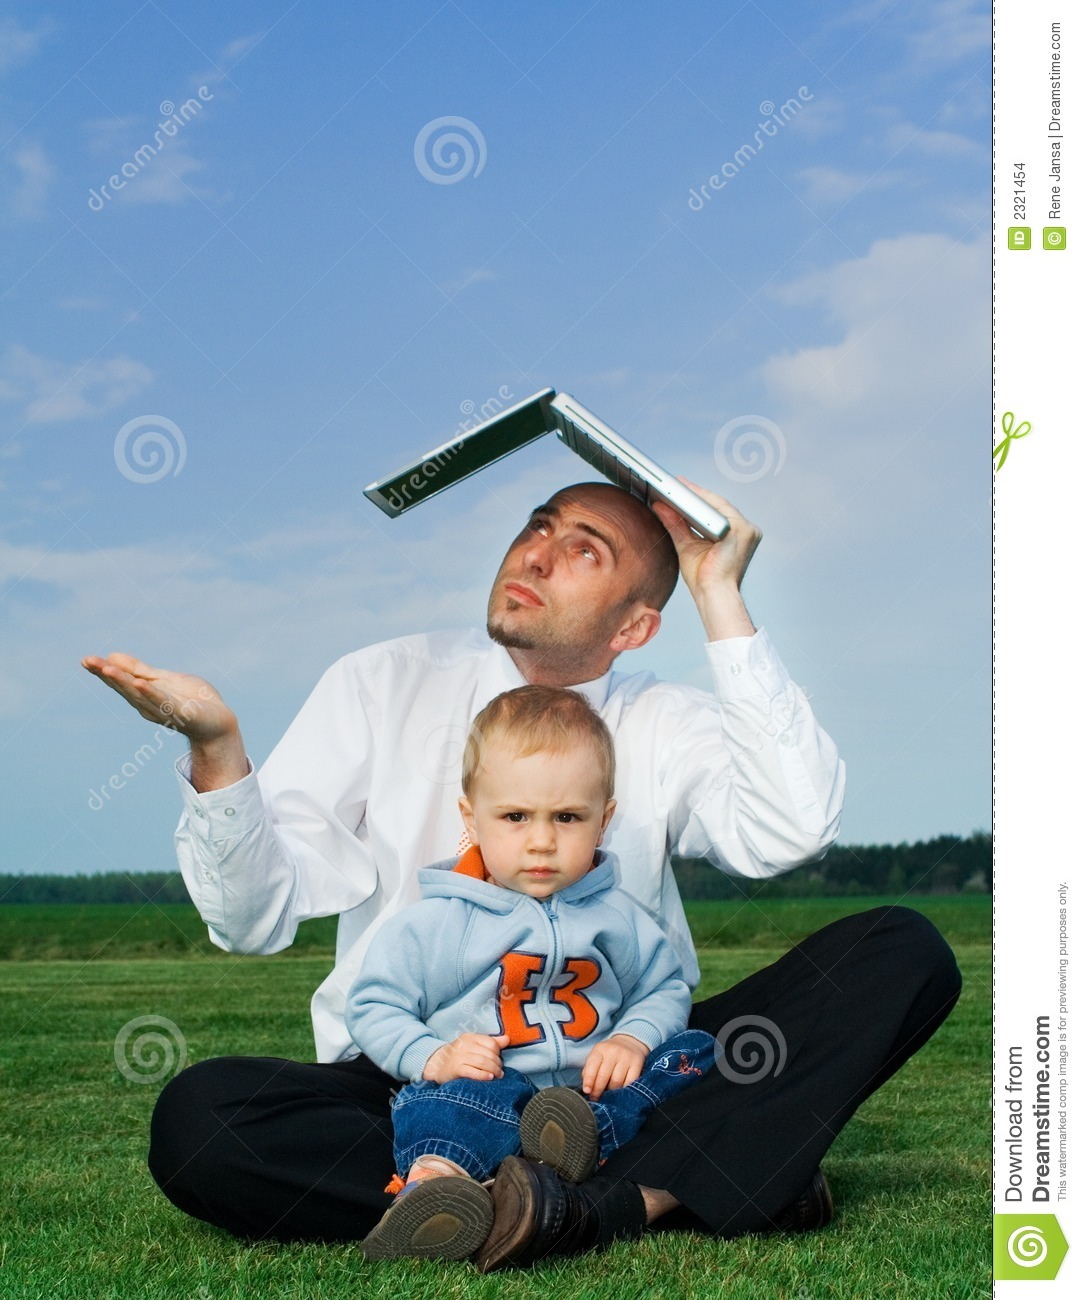 Businessman with toddler